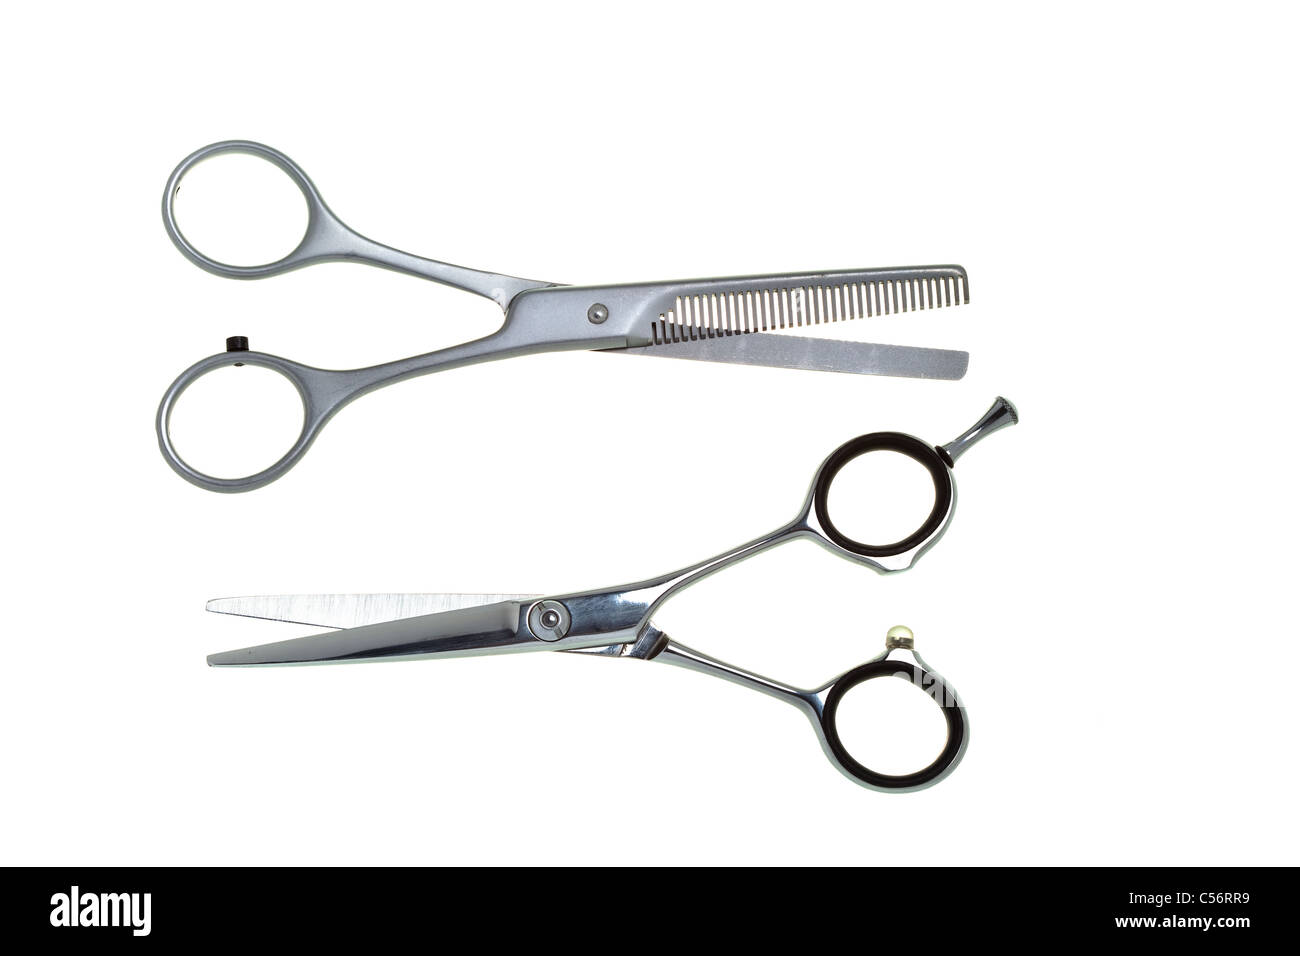 Special scissors for work of hairdresser, for hairstyle and for giving hairdress of final form, gear - Stock Image